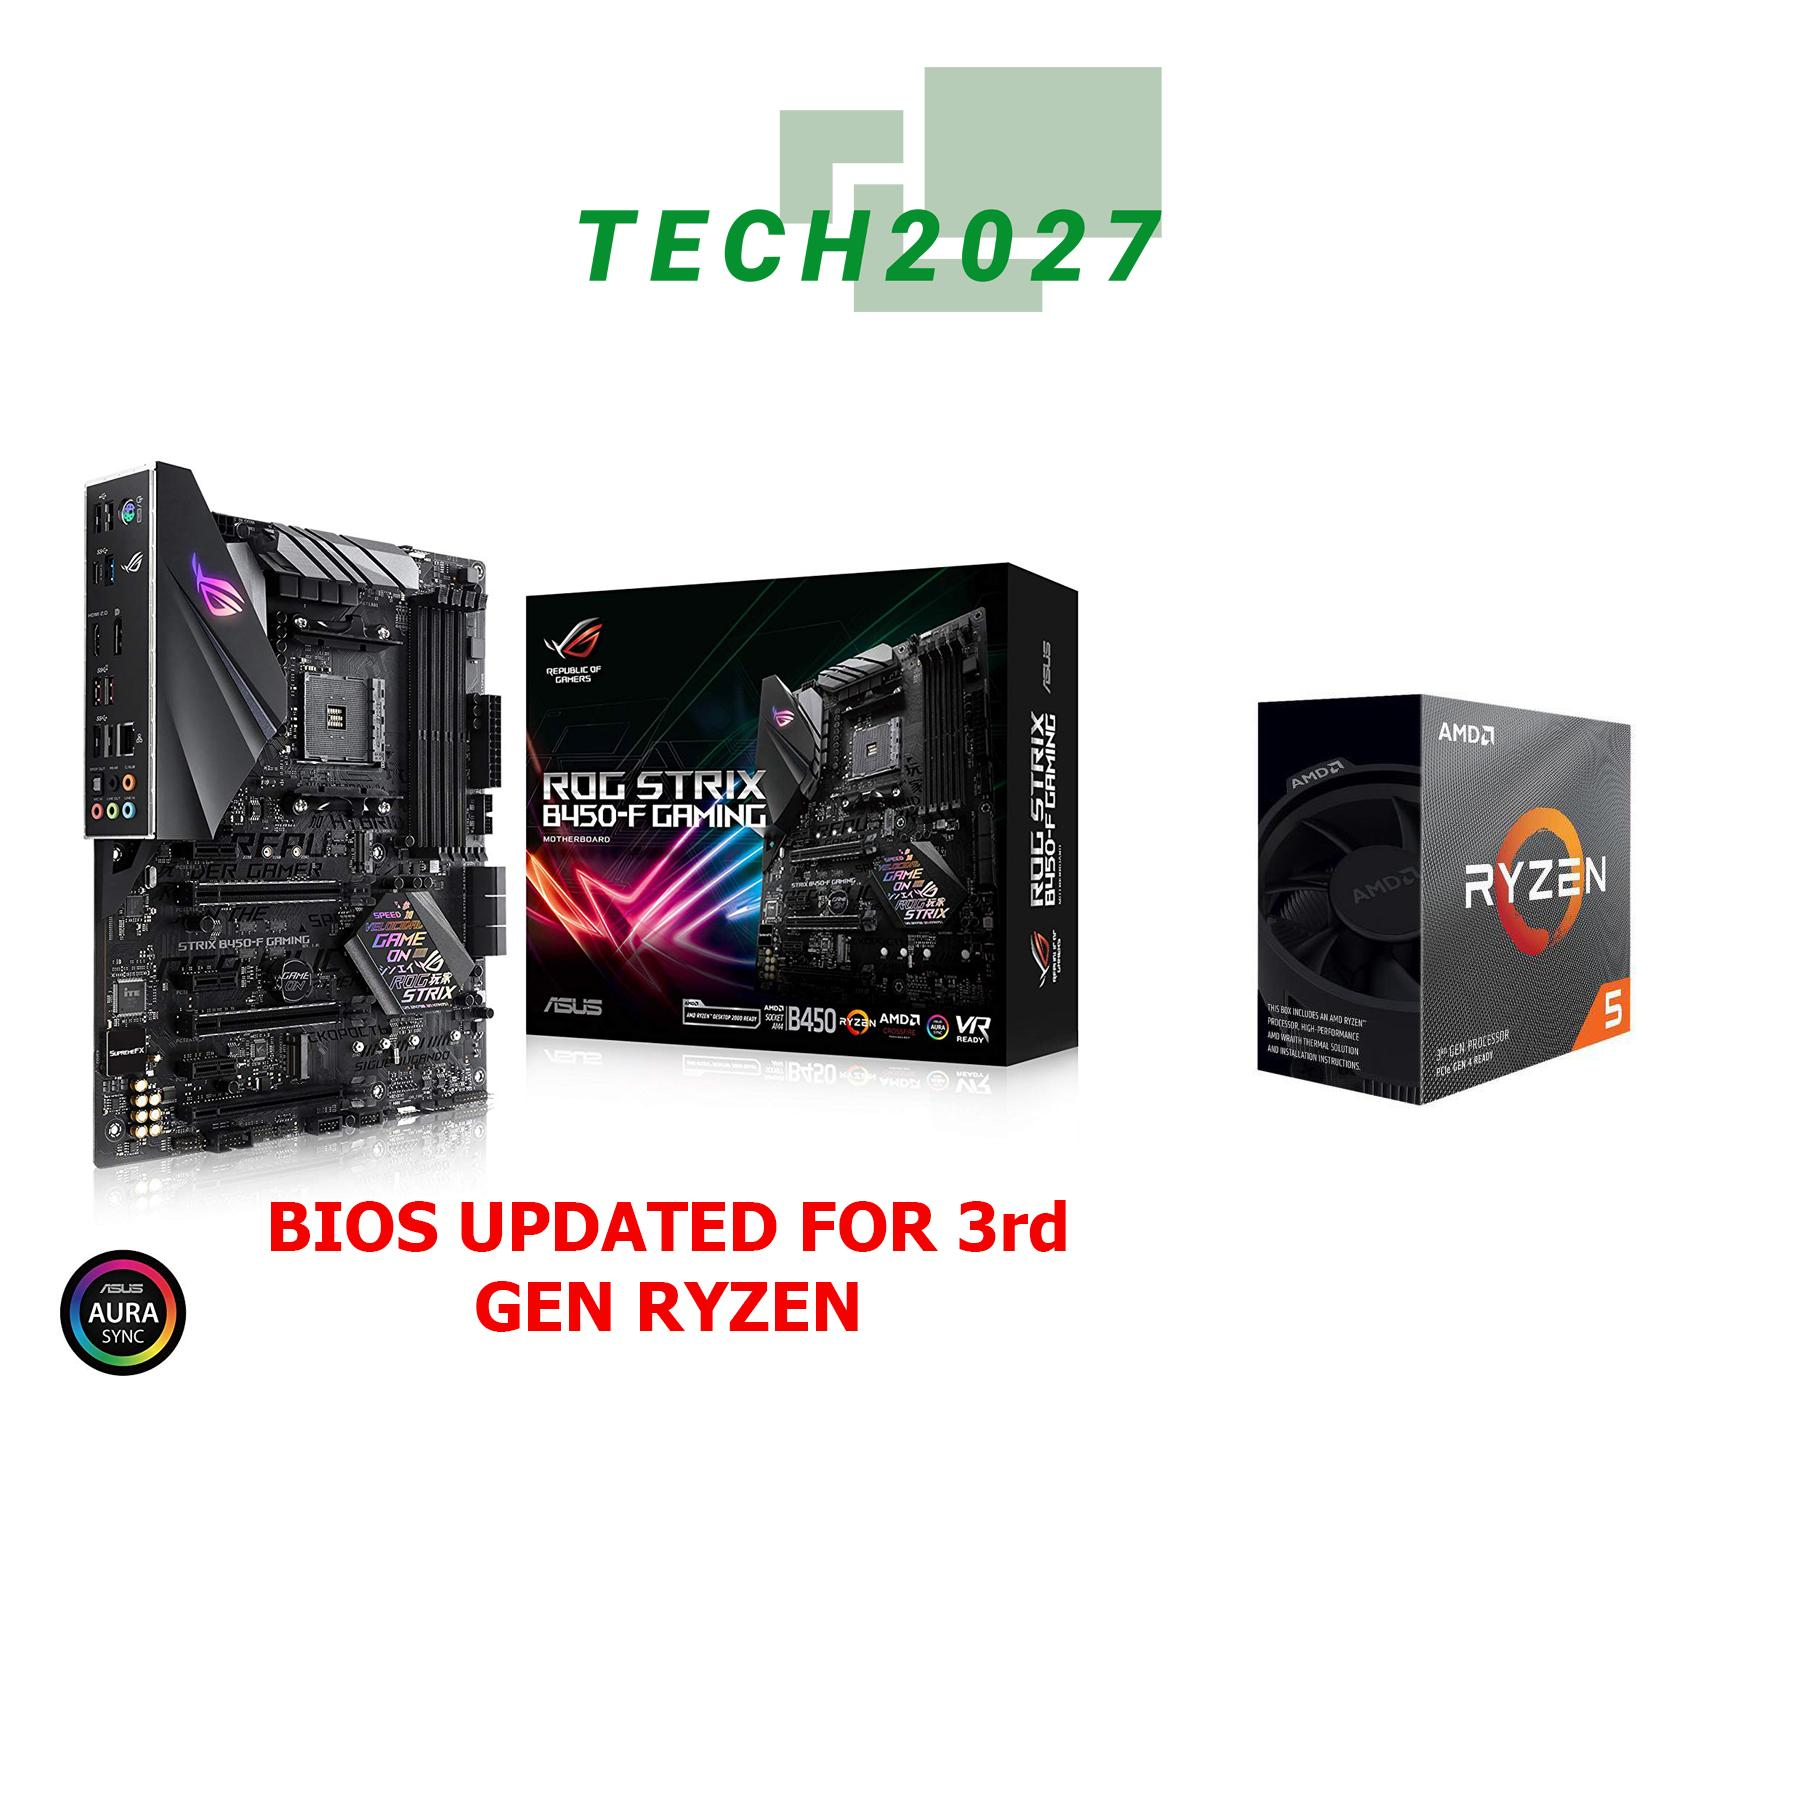 AMD RYZEN 5 3600 6-Core 3 6 GHz PROCESSOR WITH ASUS ROG STRIX B450-F GAMING  motherboard